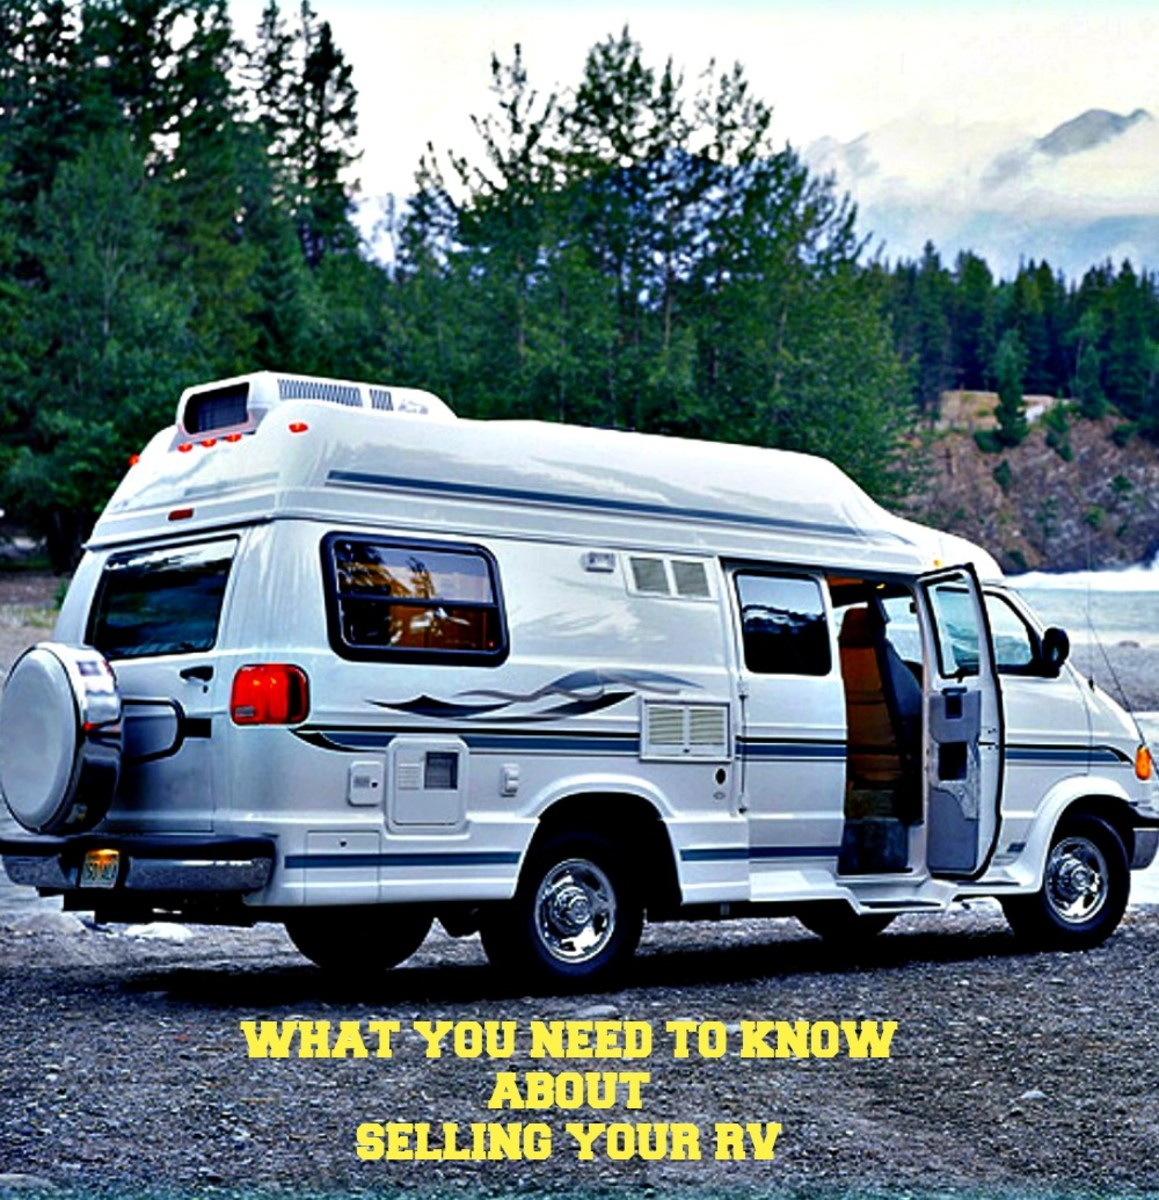 What You Need to Know About Selling Your RV